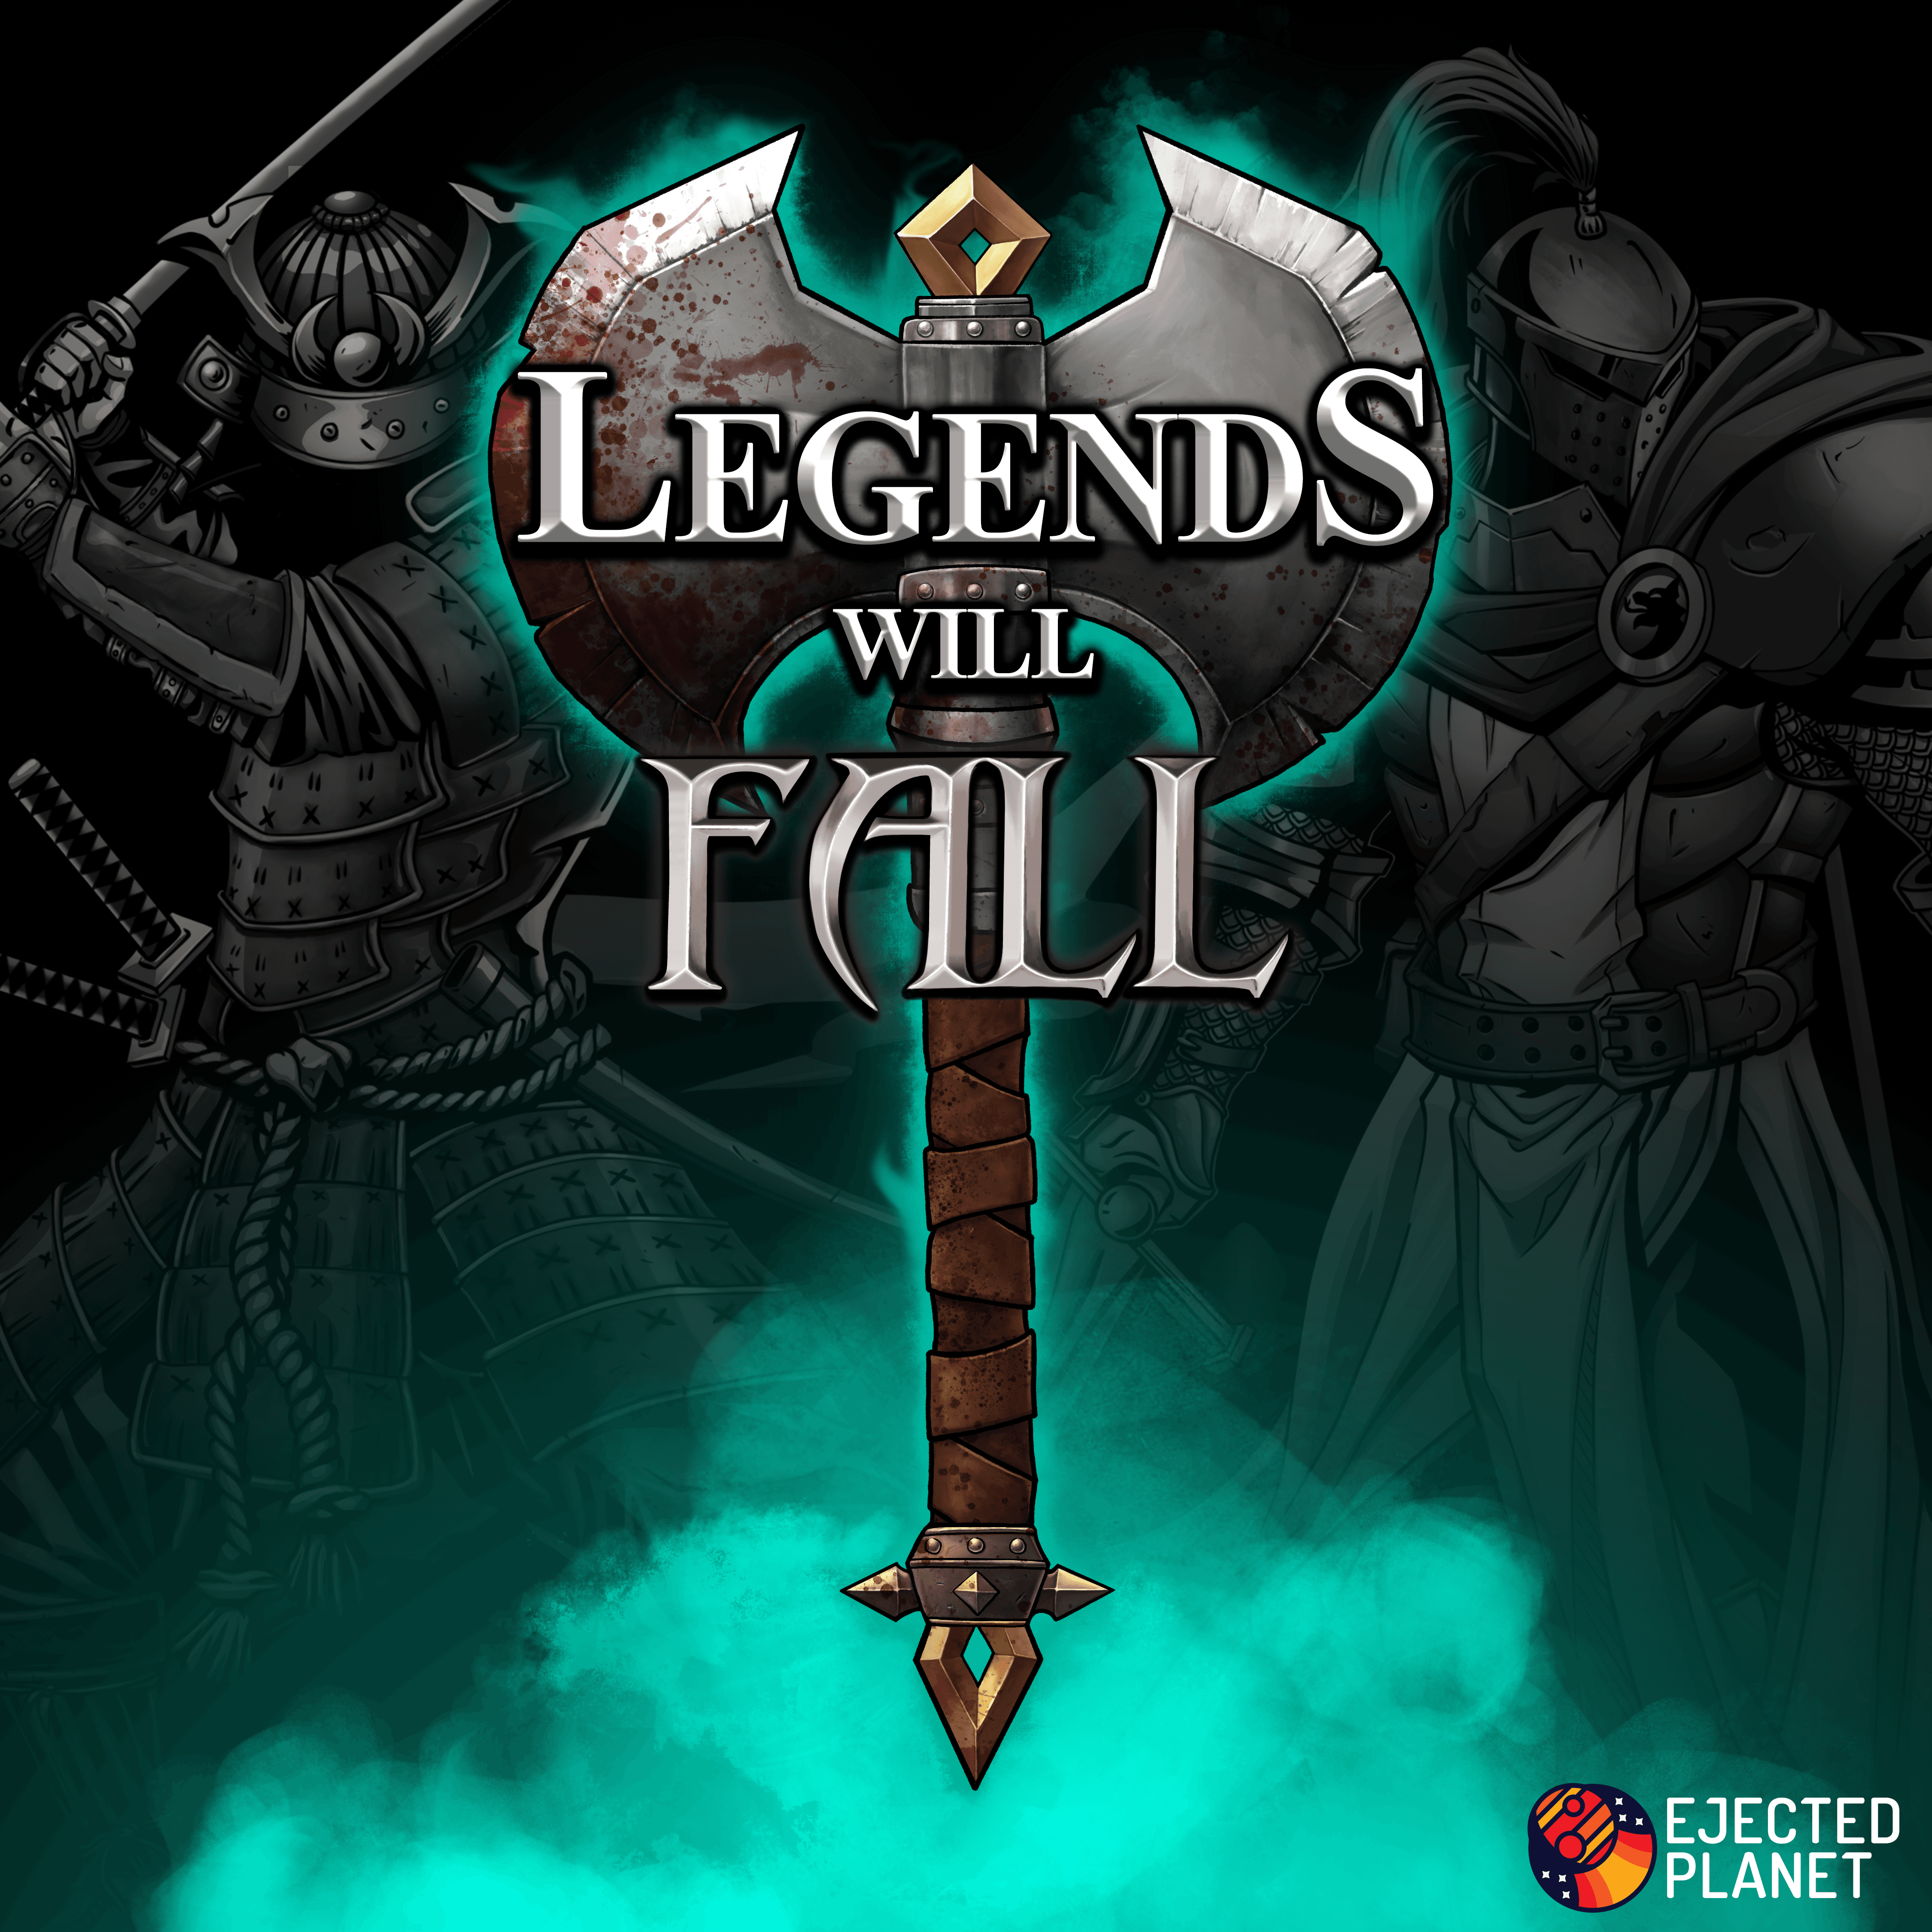 Legends Will Fall